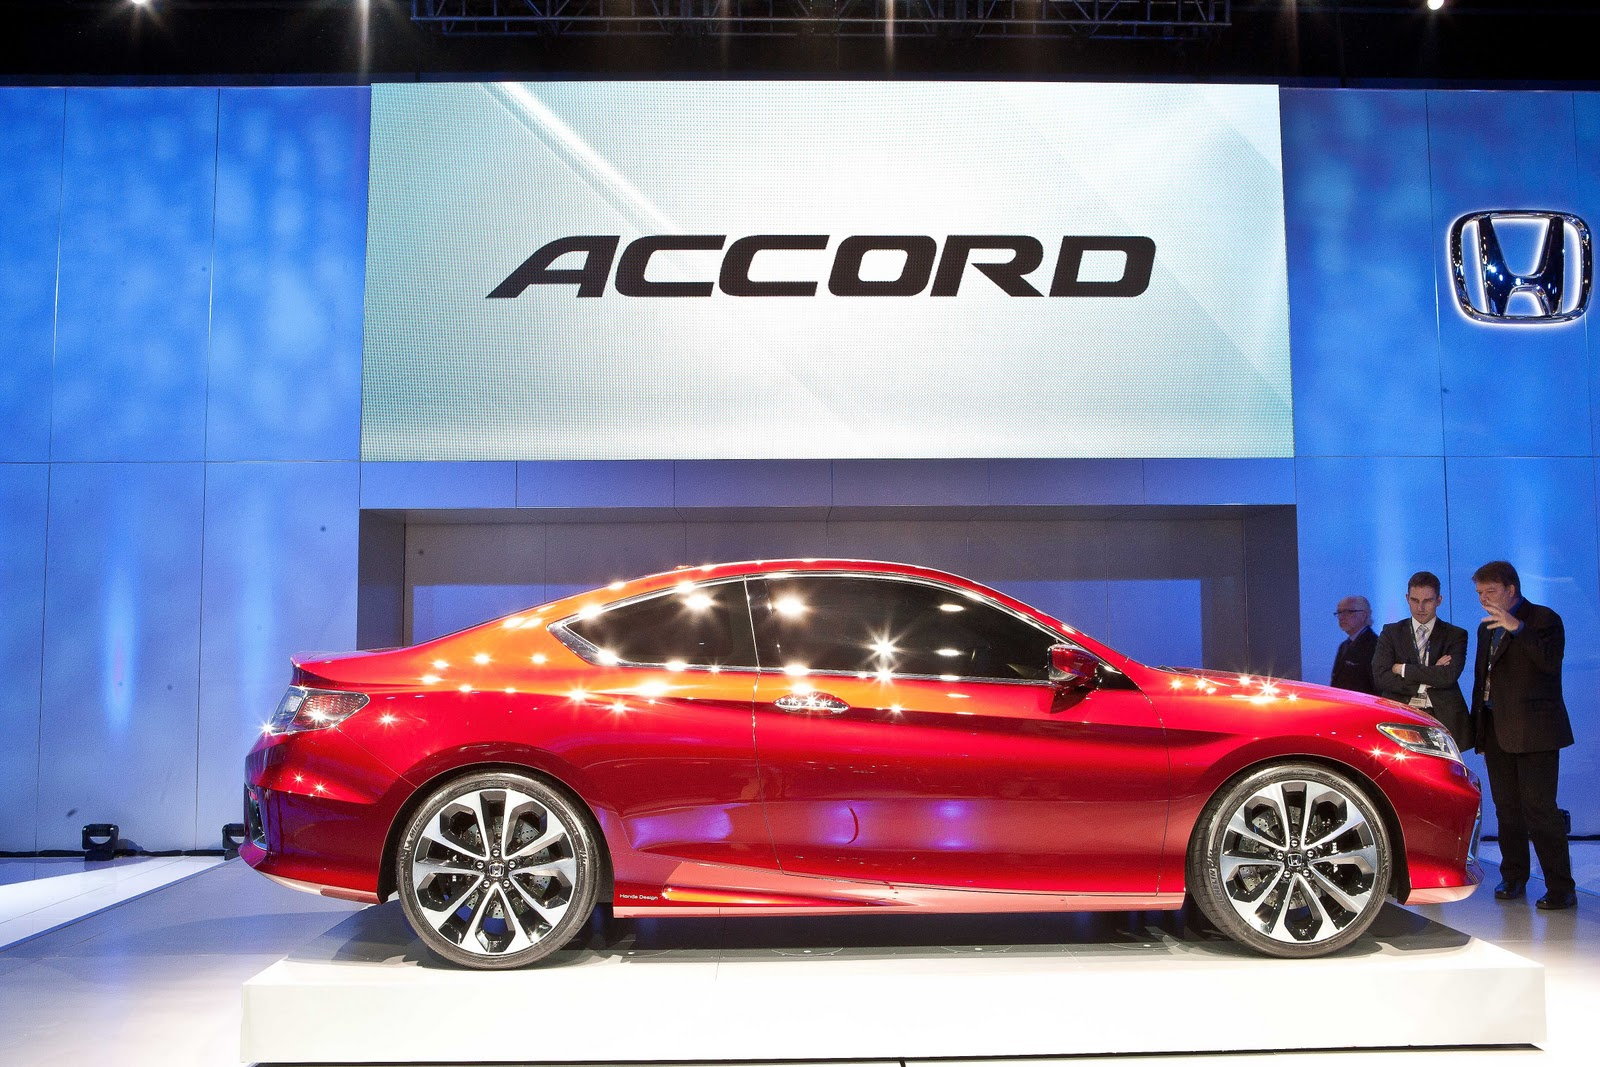 The Auto Advisor Group Honda Accord Concept Vehicle